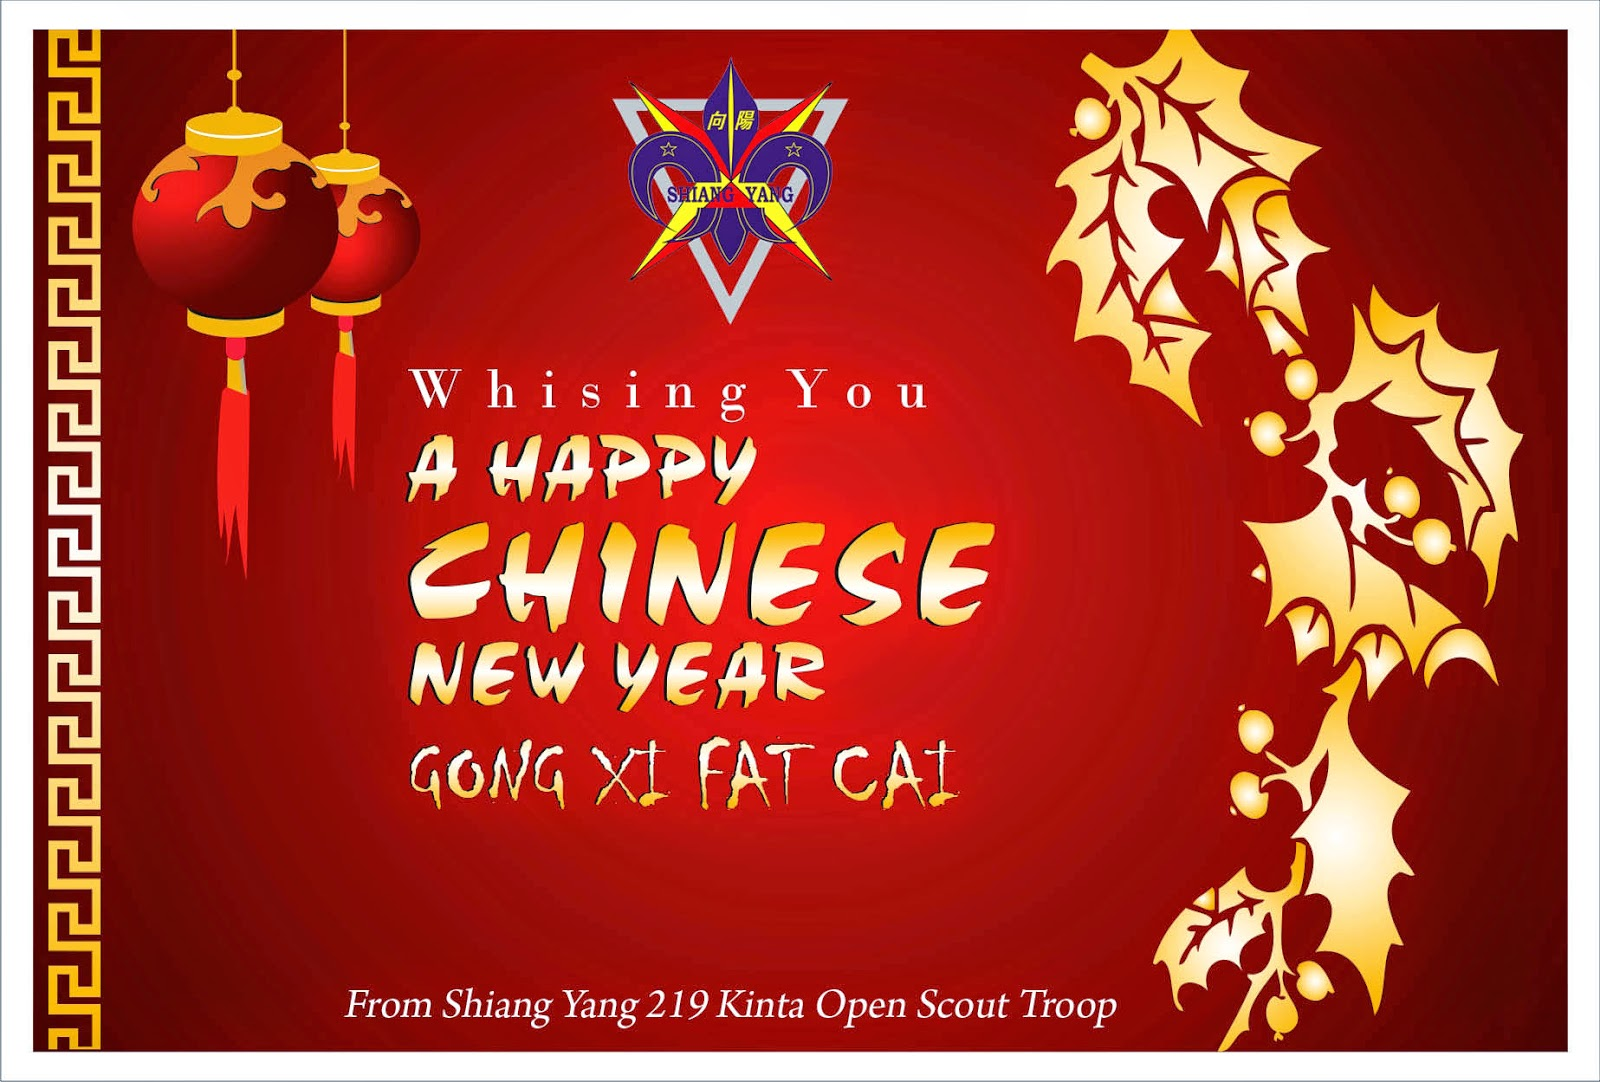 happy chinese new year wishesimages - Chinese New Year Wishes